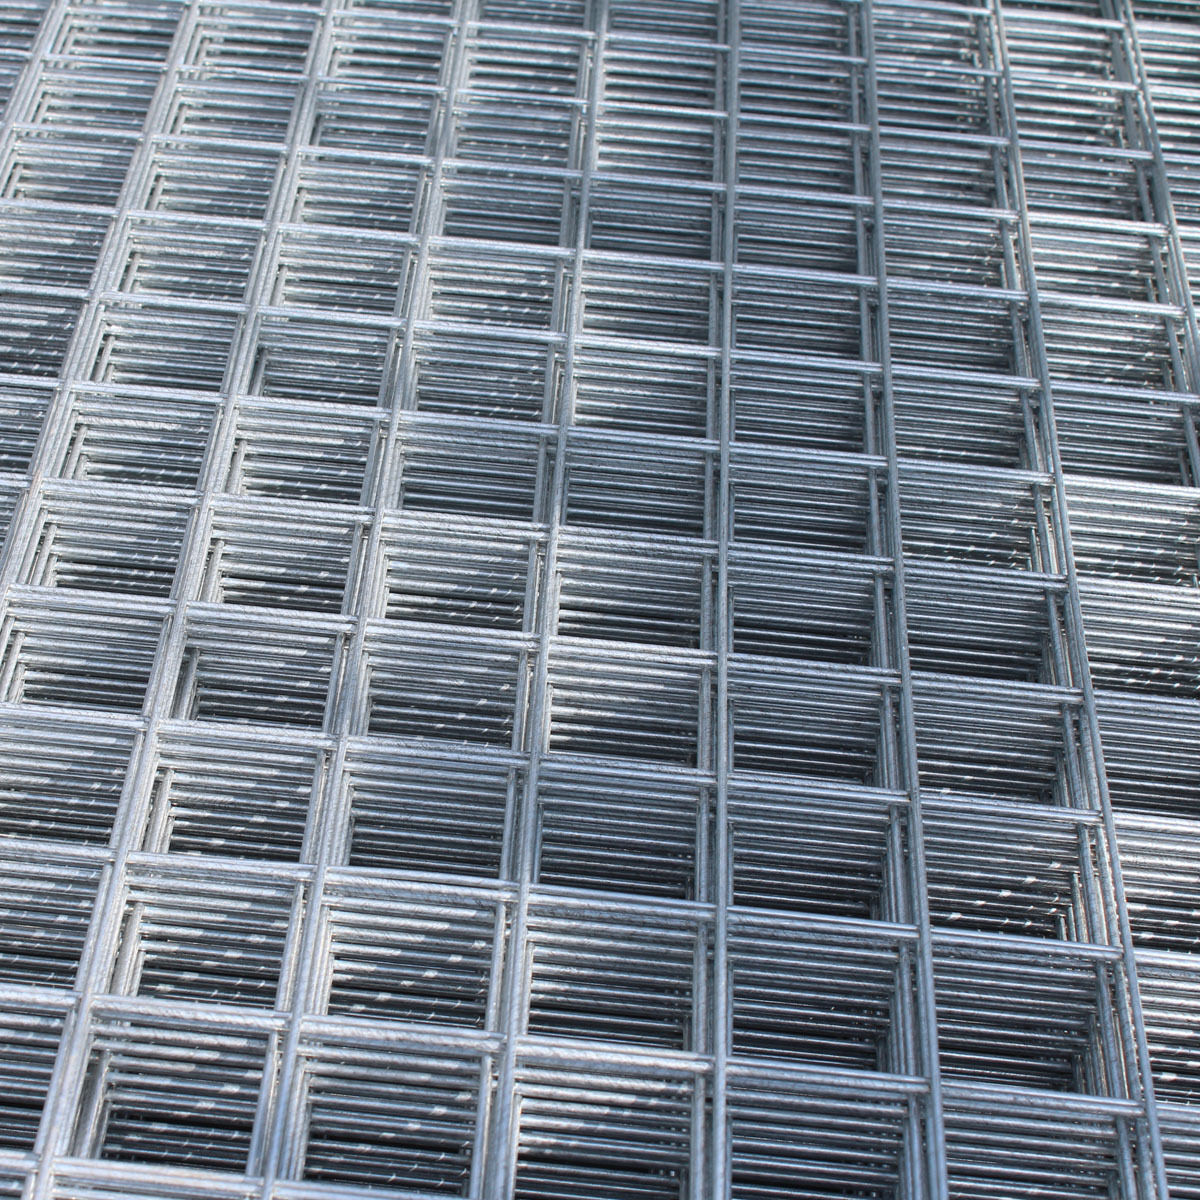 Welded Mesh Panels Steel Wire Galvanised Sheets 6 Pack 8ft X 4ft ...